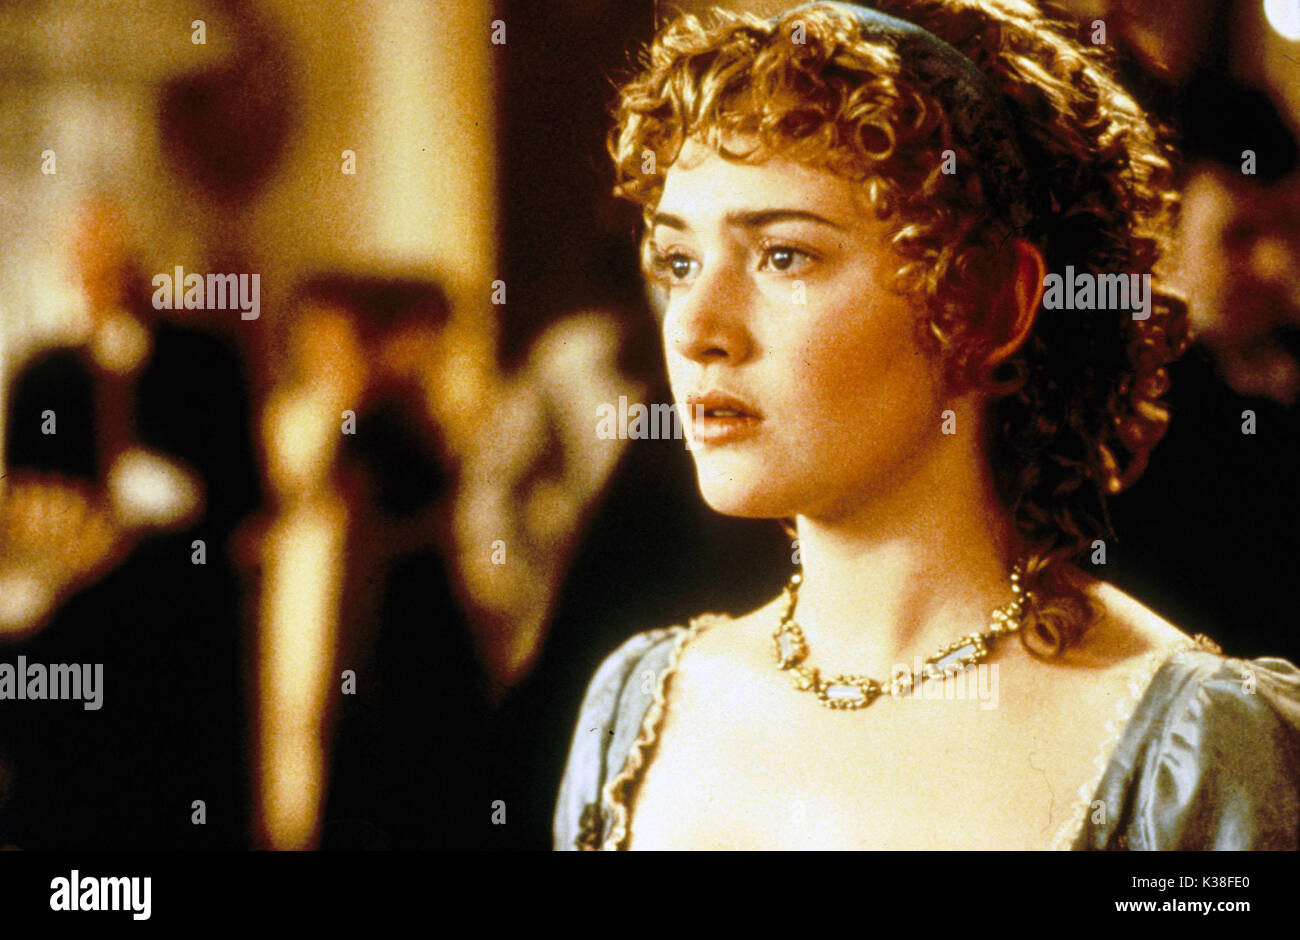 a review on sense and sensibility directed by ang lee This item:sense and sensibility [dvd] [1996] by emma thompson dvd £399   the director, an inspired choice, is taiwan-born ang lee, who brings the same  exquisite taste and  would you like to see more reviews about this item.